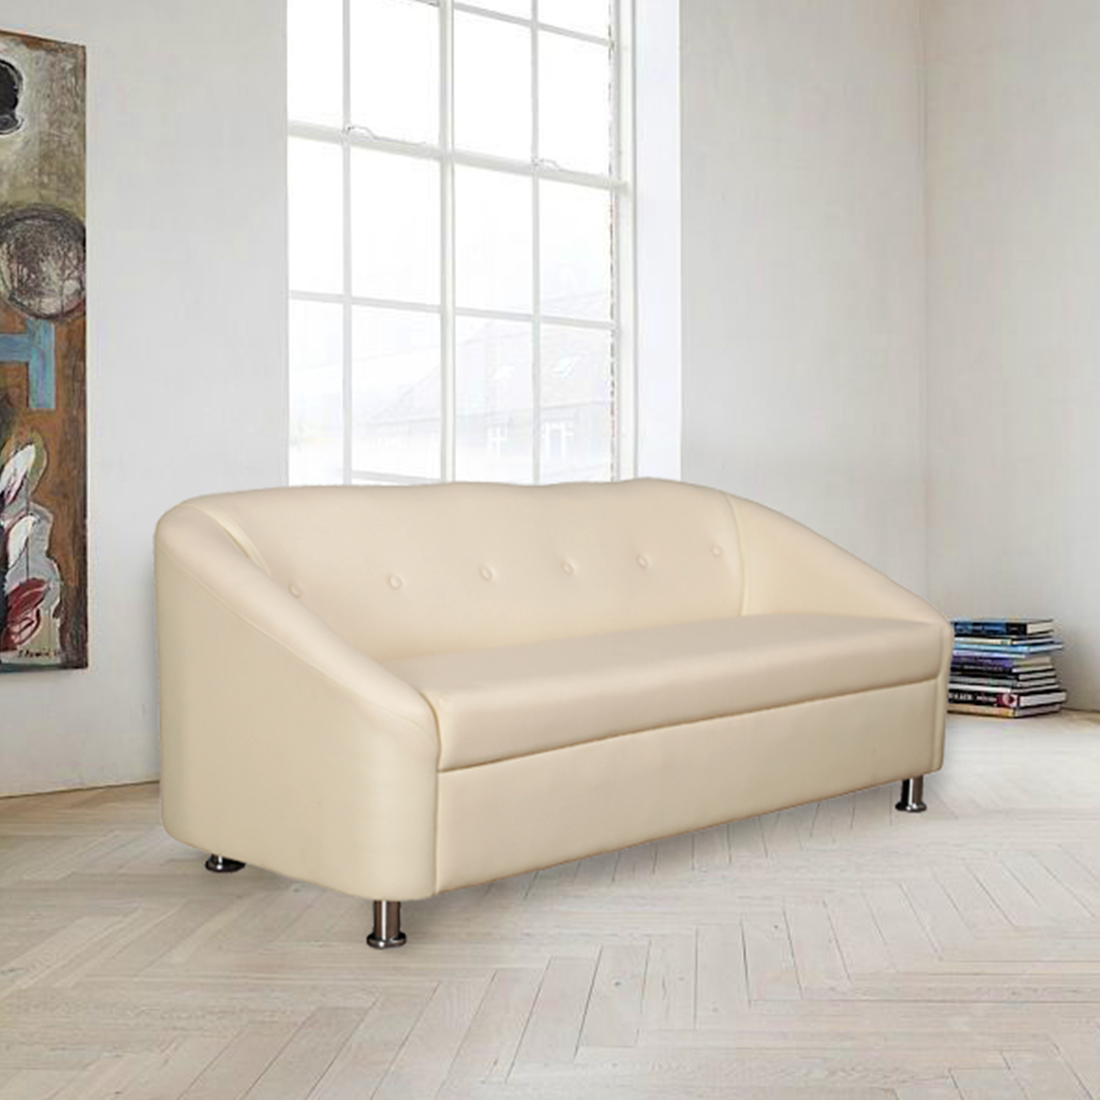 Belfast Miranty Wood Three Seater sofa in Ivory Colour by HomeTown